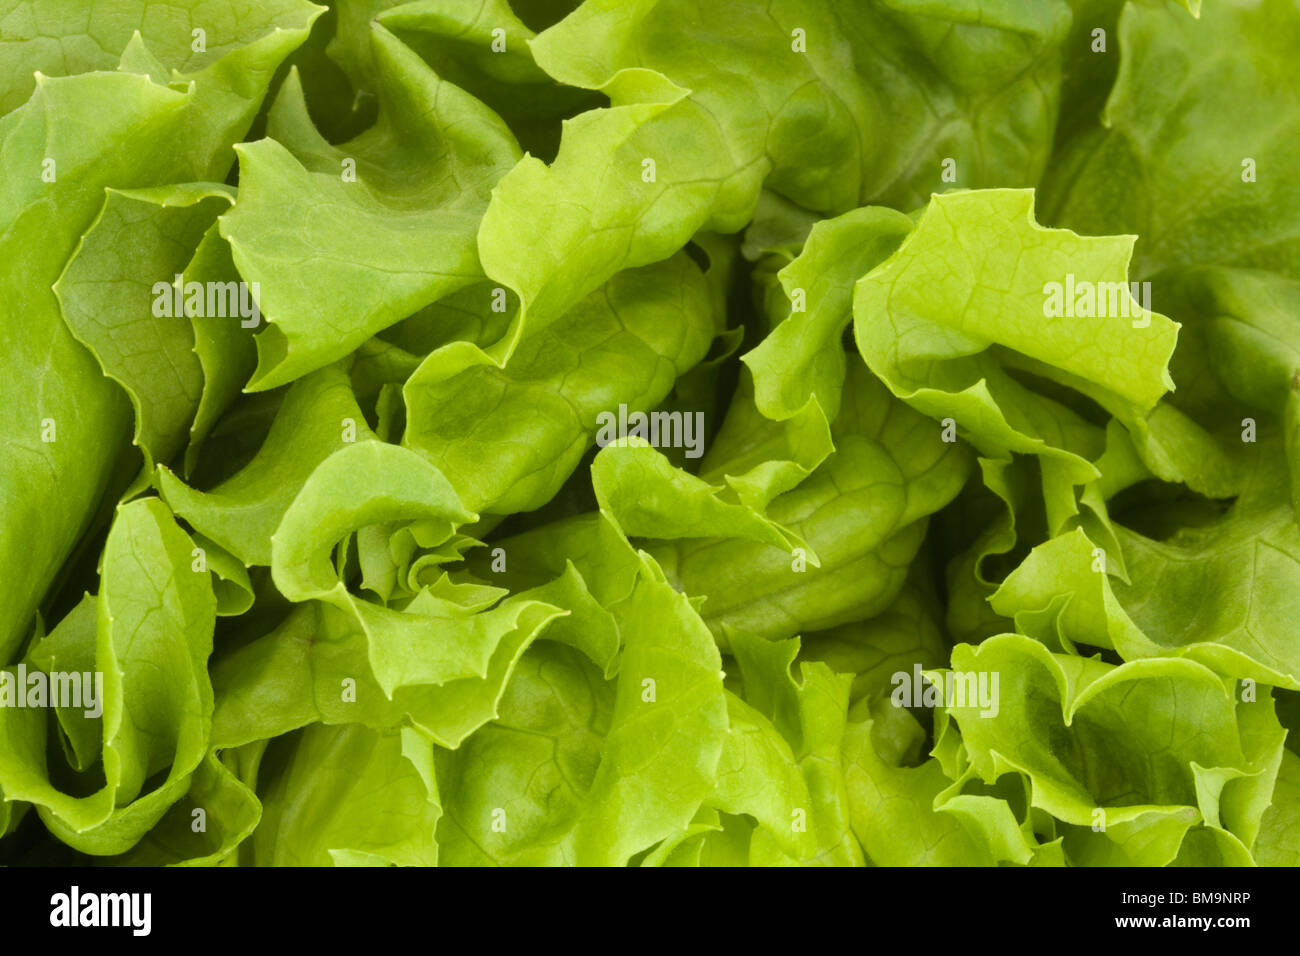 close up of a fresh green lettuce background - Stock Image